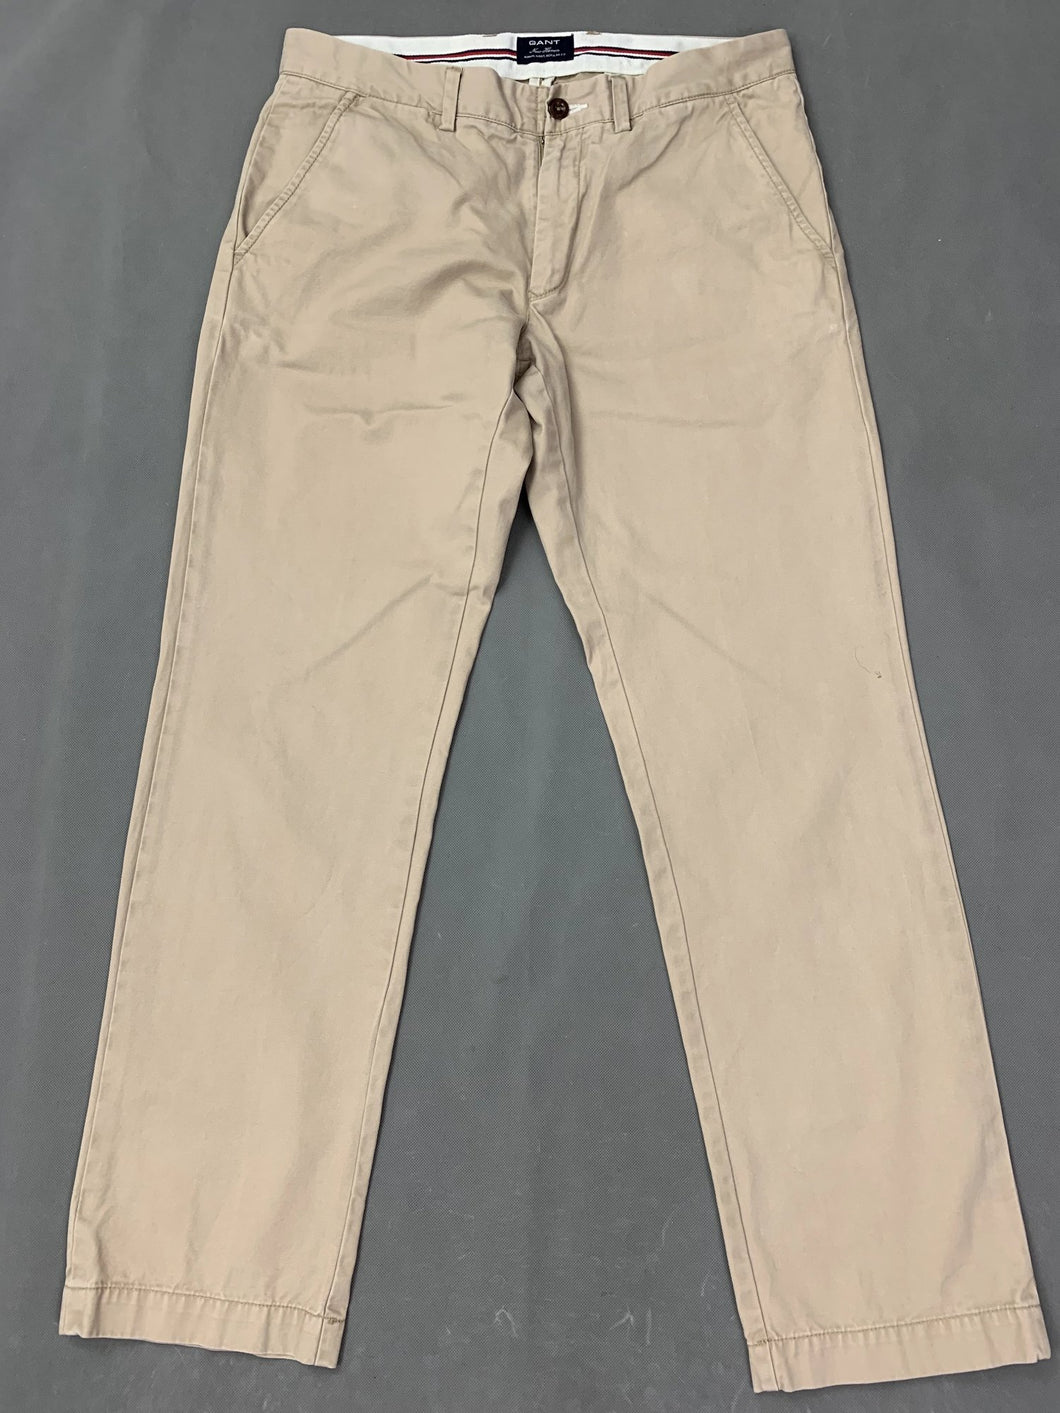 GANT Mens NEW HAVEN Beige CHINOS / TROUSERS Size Waist 32